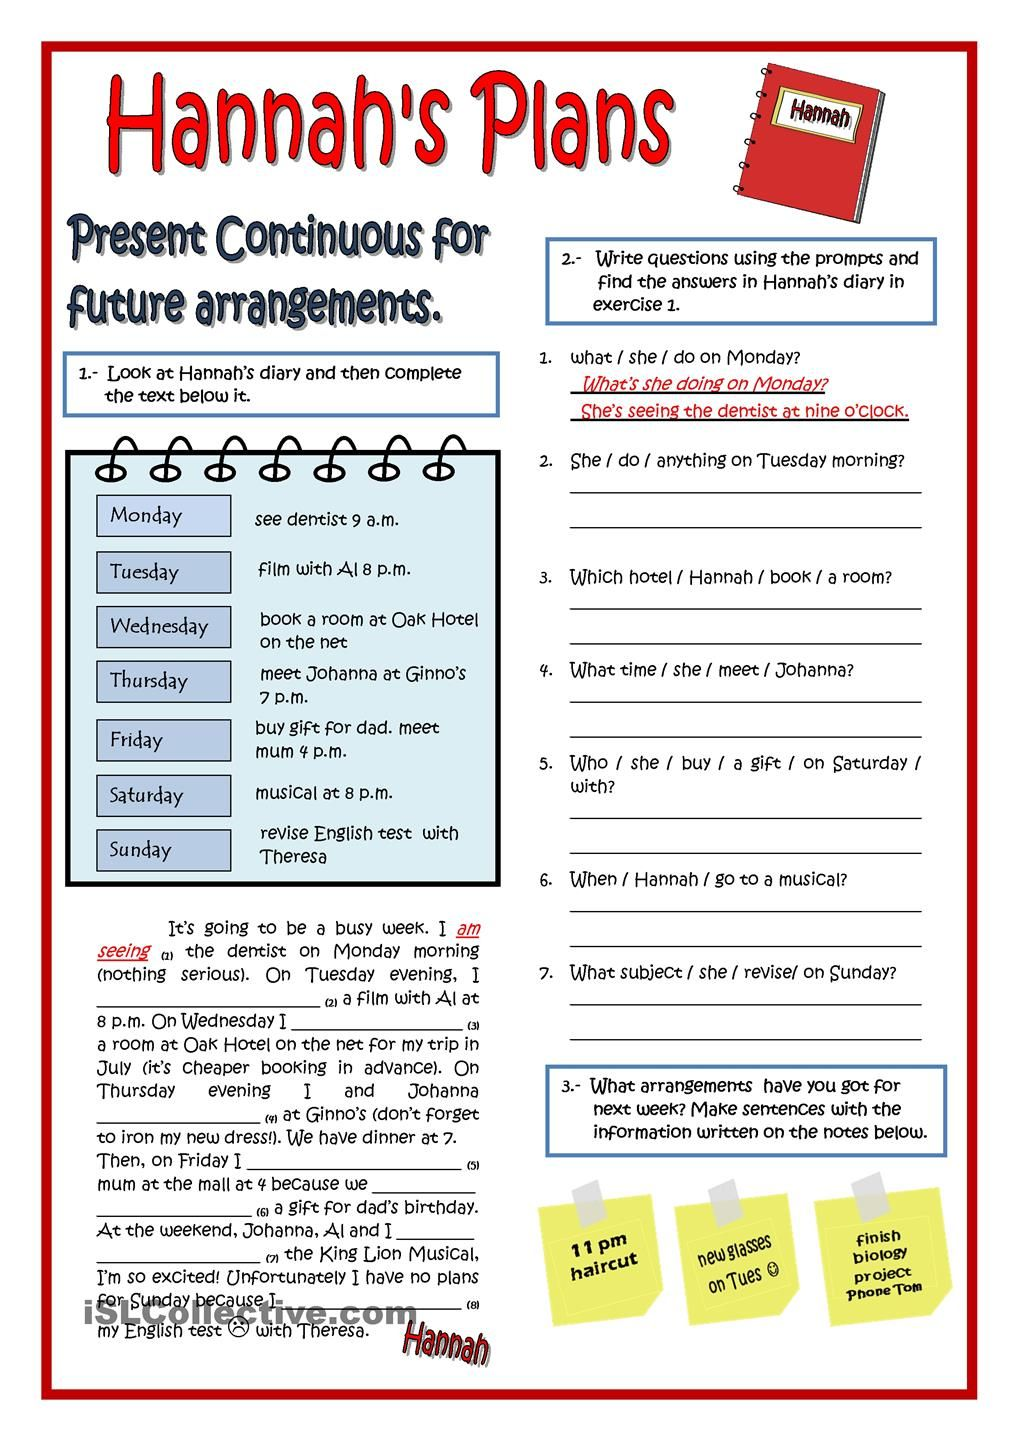 Workbooks spanish present tense practice worksheets : HANNAHS PLANS - PRESENT CONTINUOUS | Для уроков | Pinterest ...